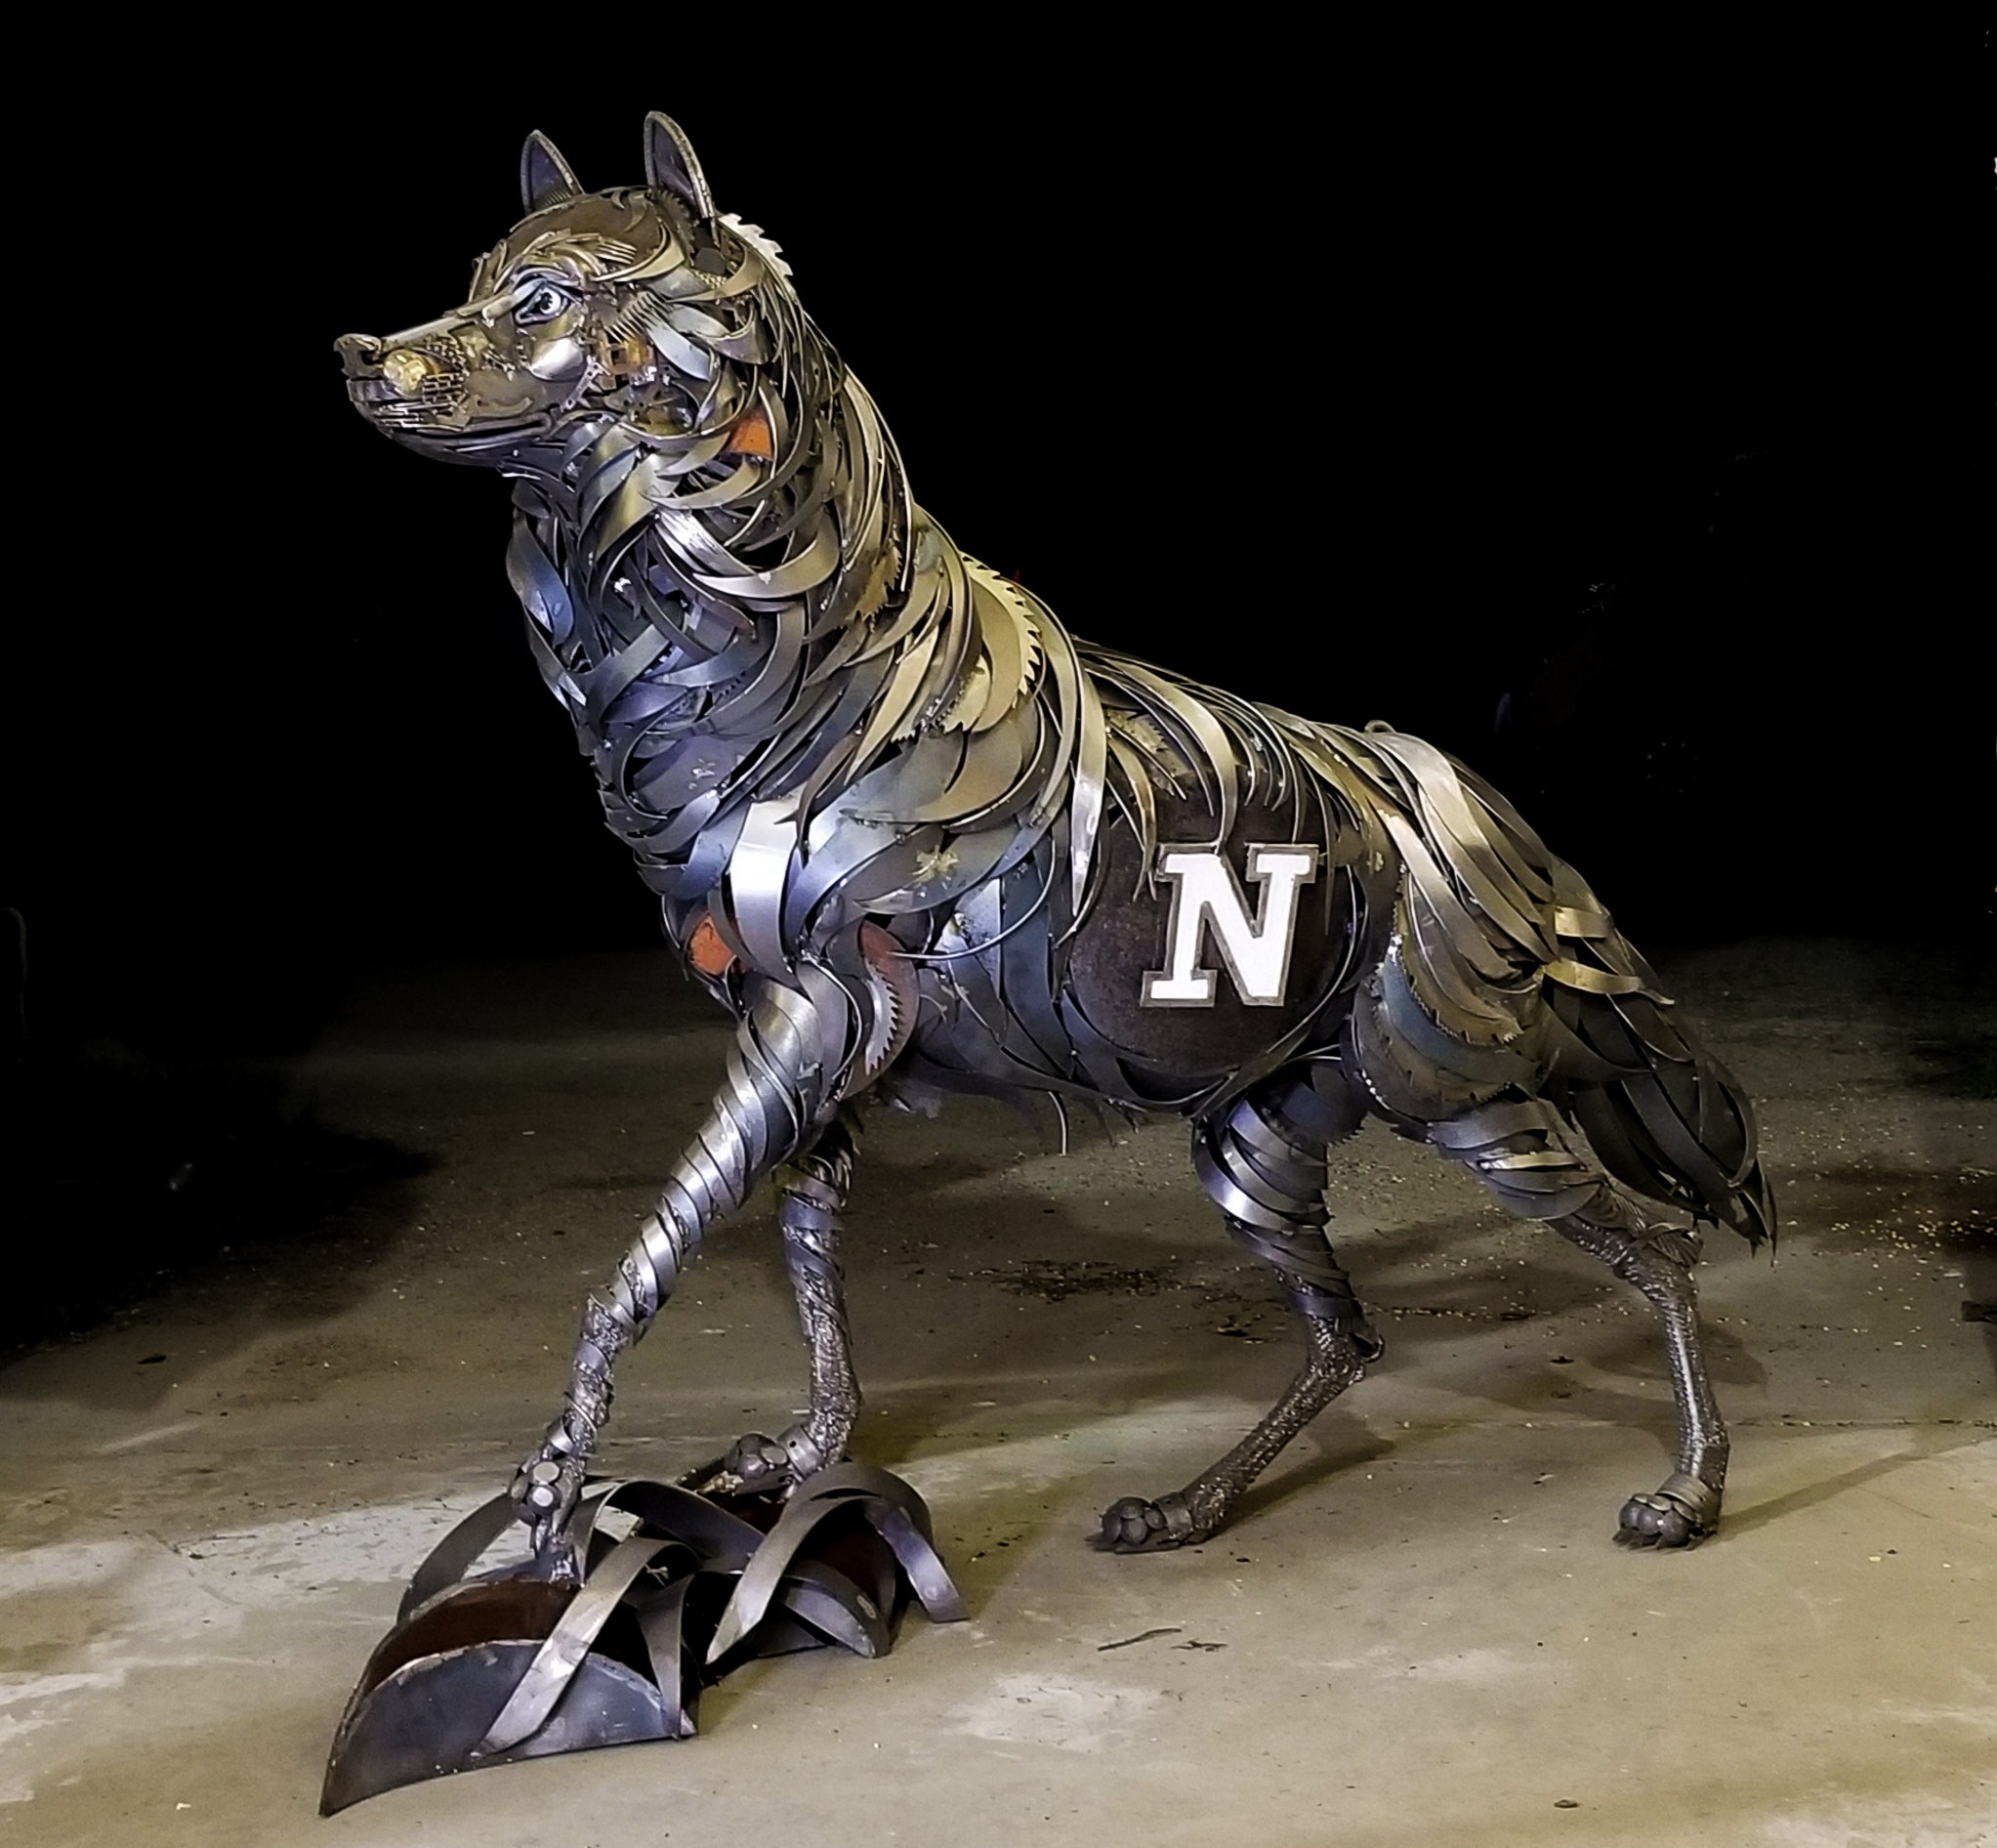 The summer of 2019 John completed a commission to create the mascot for the Northern State University Wolves in Aberdeen.